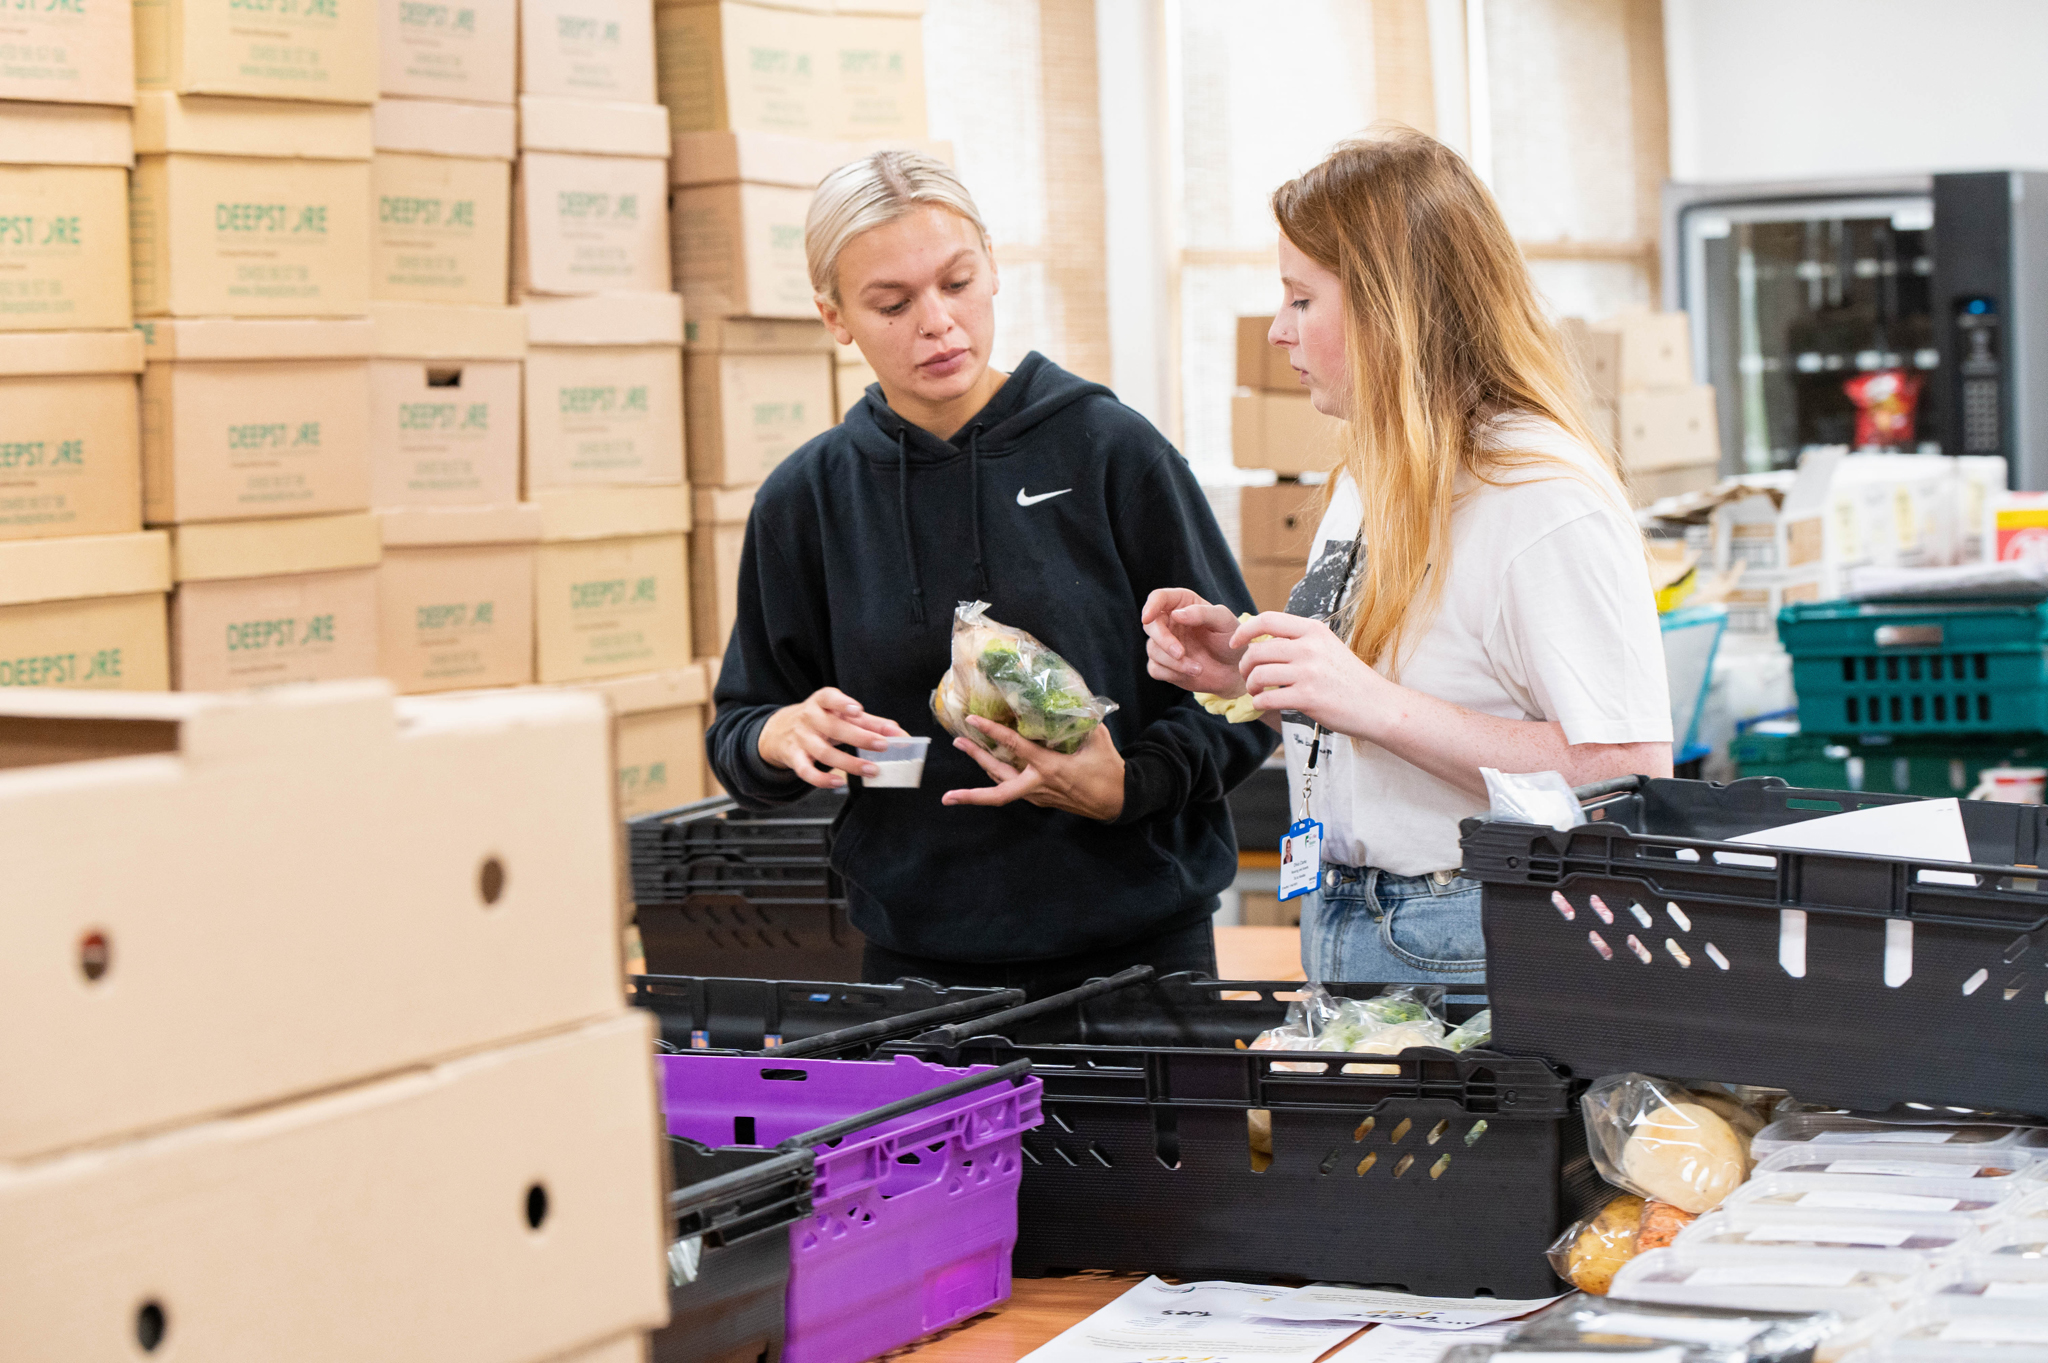 Two young people volunteer at food distribution centre